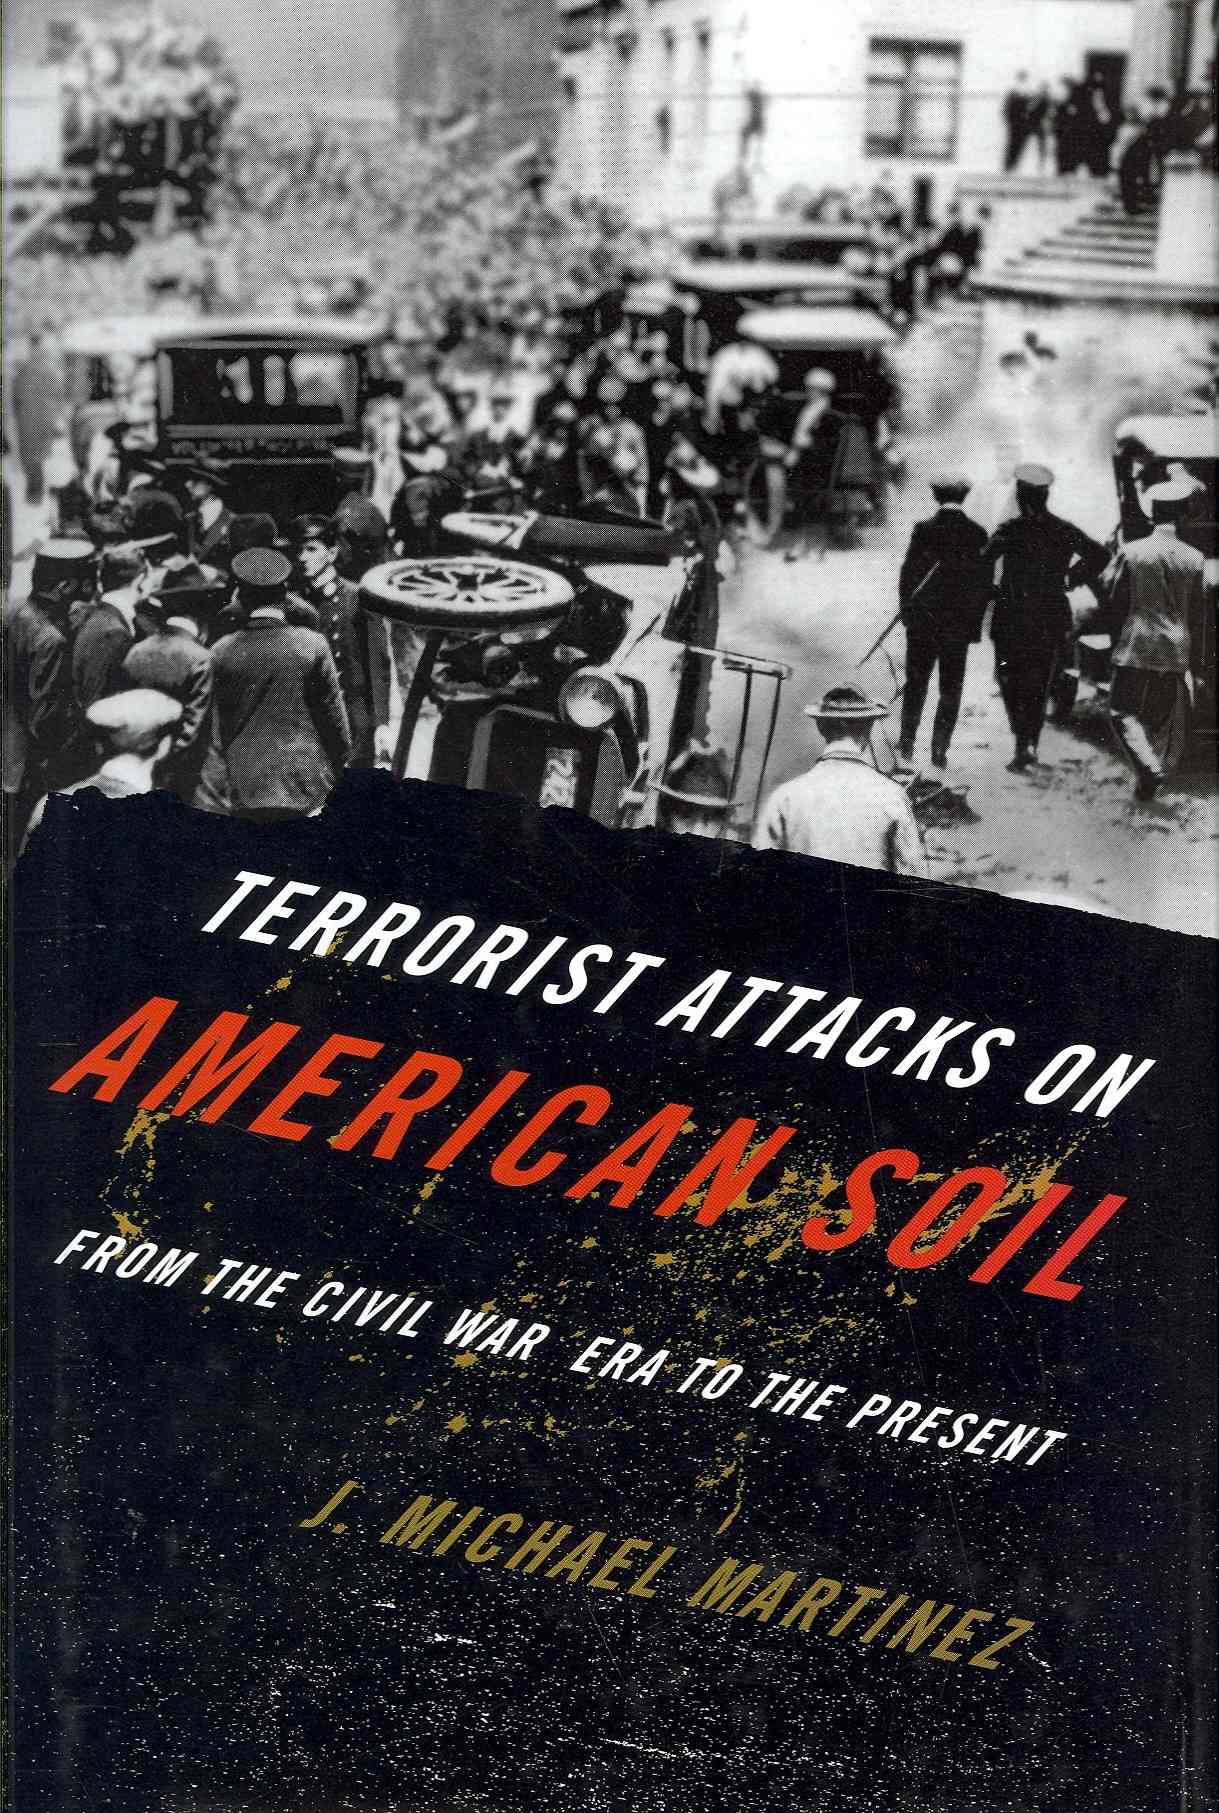 Terrorist Attacks on American Soil: From the Civil War Era to the Present (Hardcover)